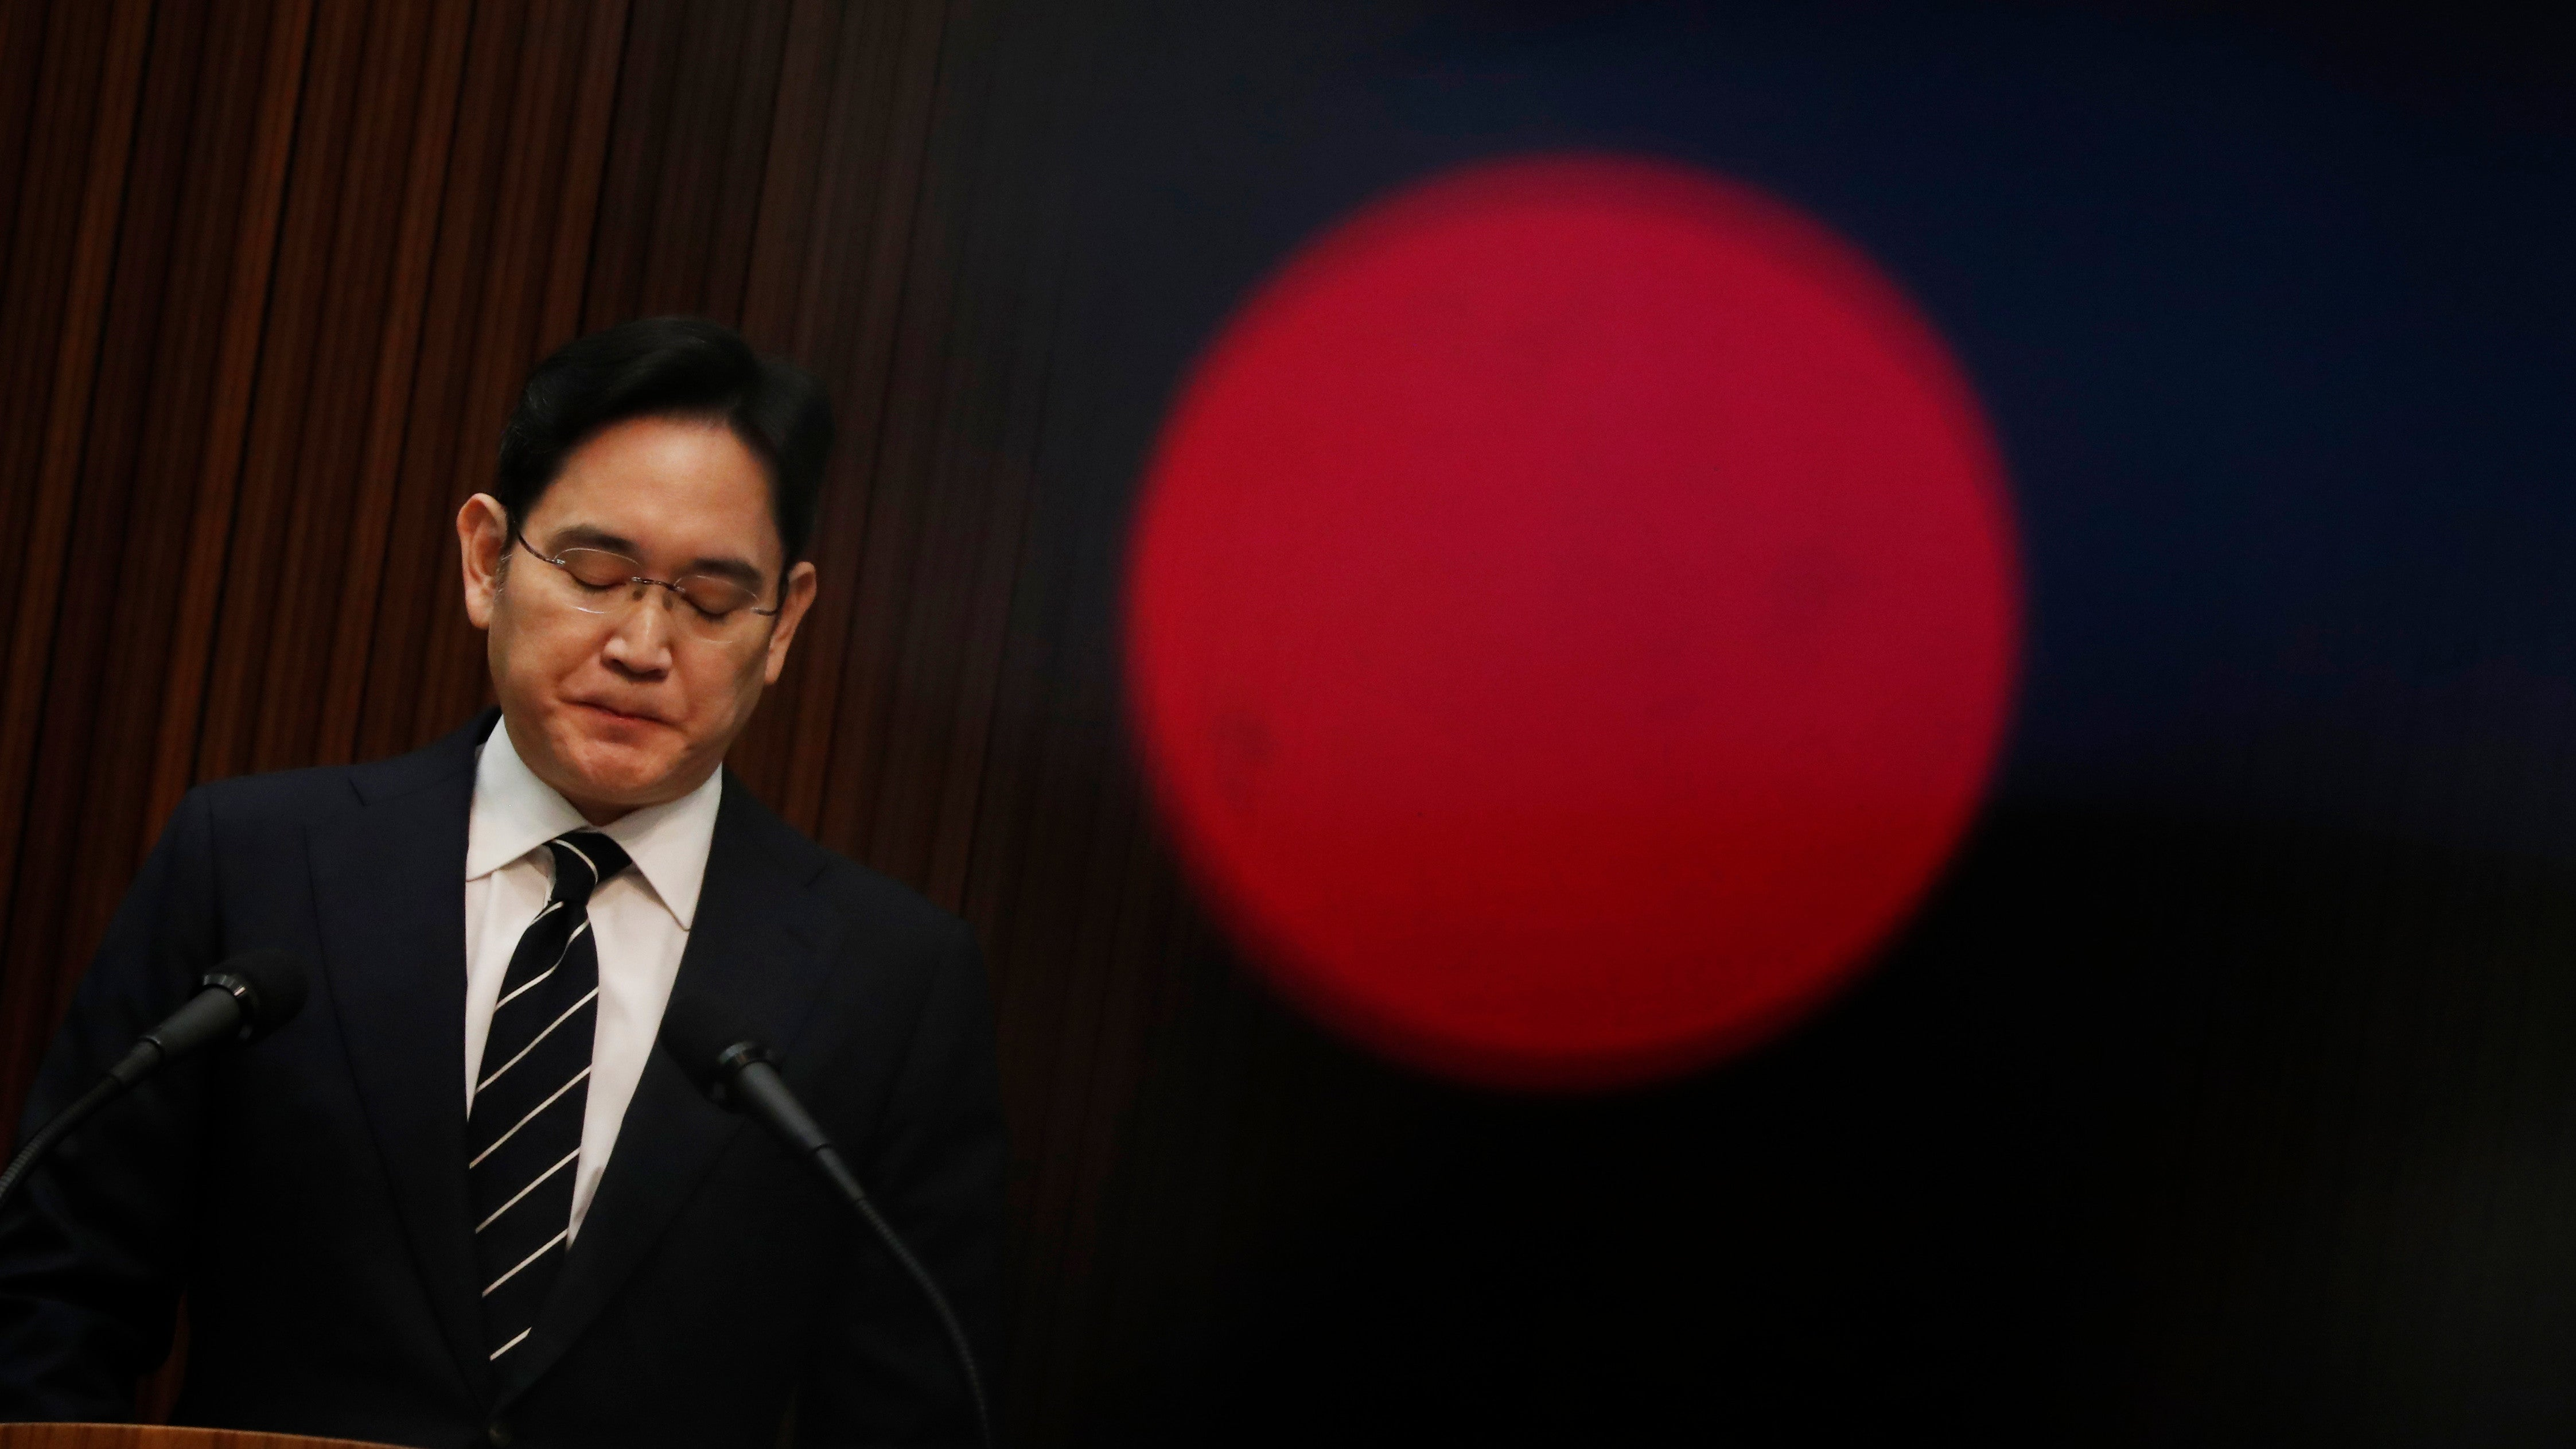 Samsung Heir Makes History By Pledging To End Family's Corporate Dynasty